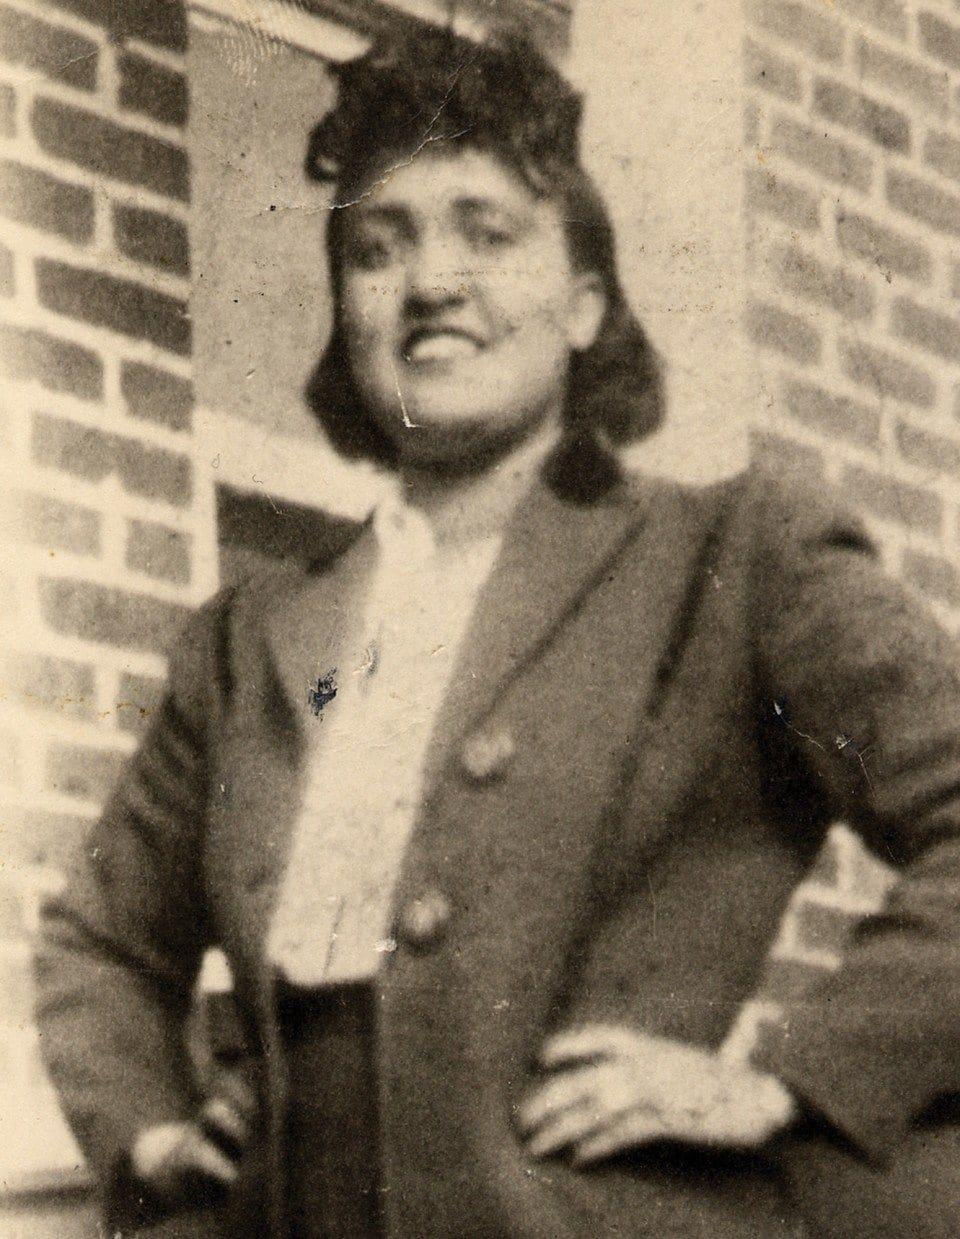 Henrietta Lacks' story is chronicled in The Immortal Life of Henrietta Lacks by Rebecca Skaloot.